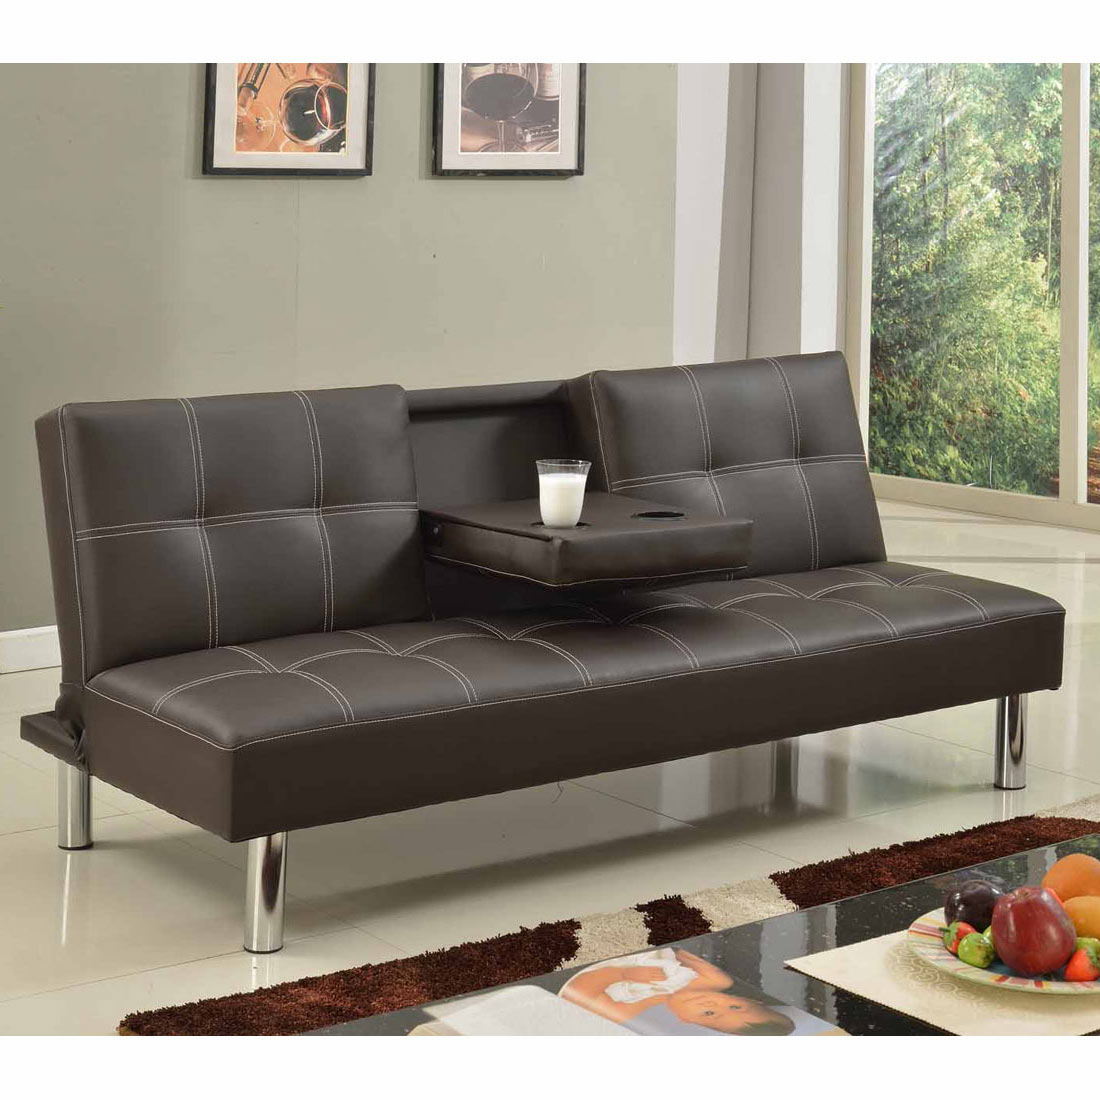 Cinemo 3 Seater Sofa Bed Faux Leather W Fold Down Table Chrome Legs Futon Ebay